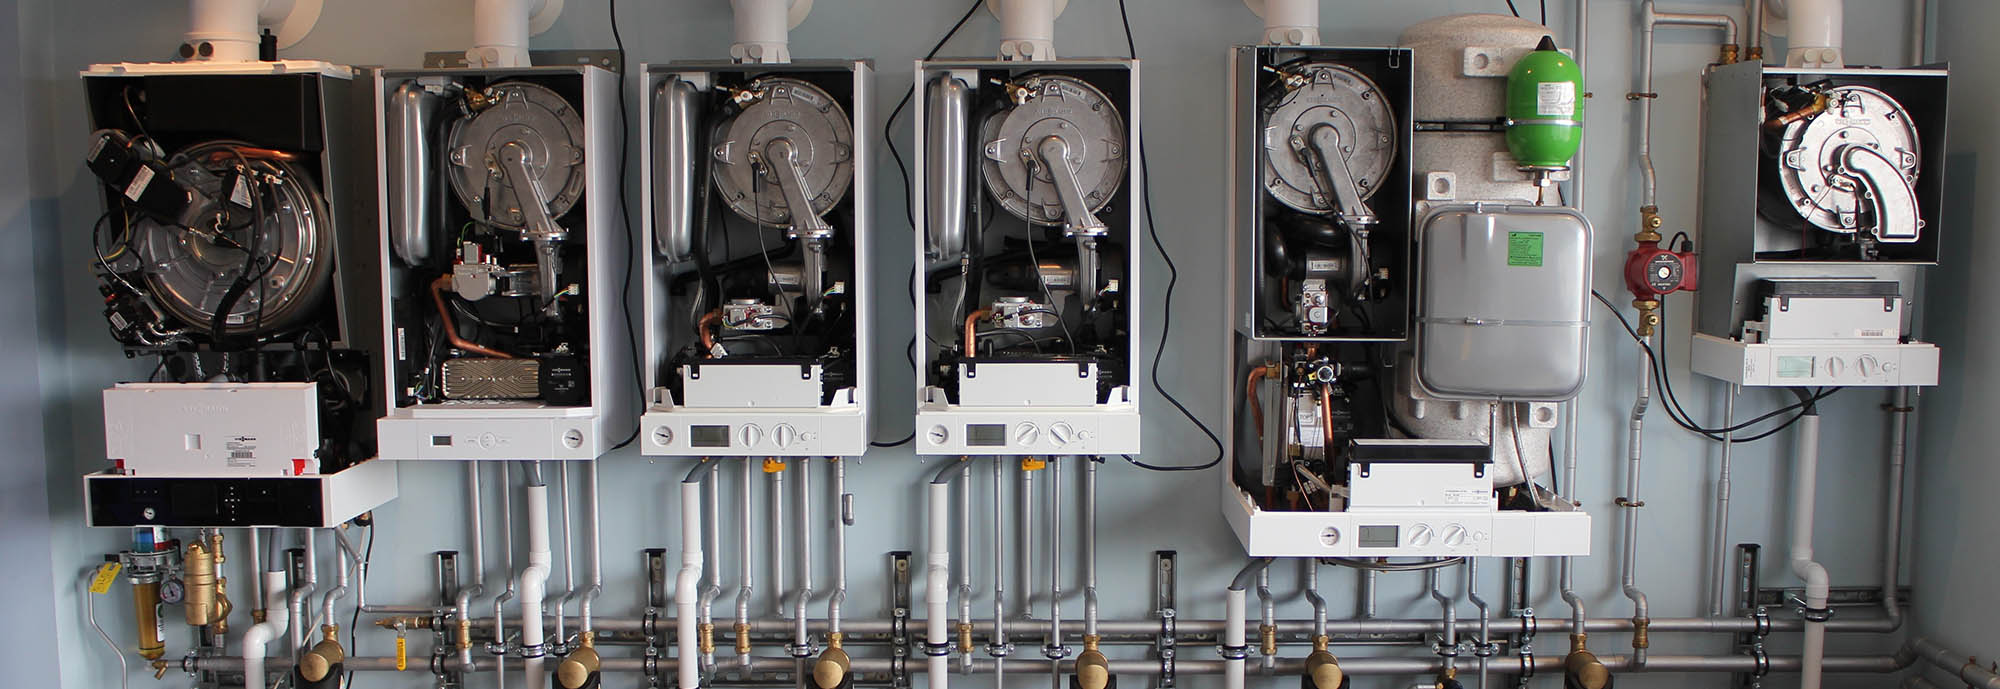 Viessmann Boilers Training Centre